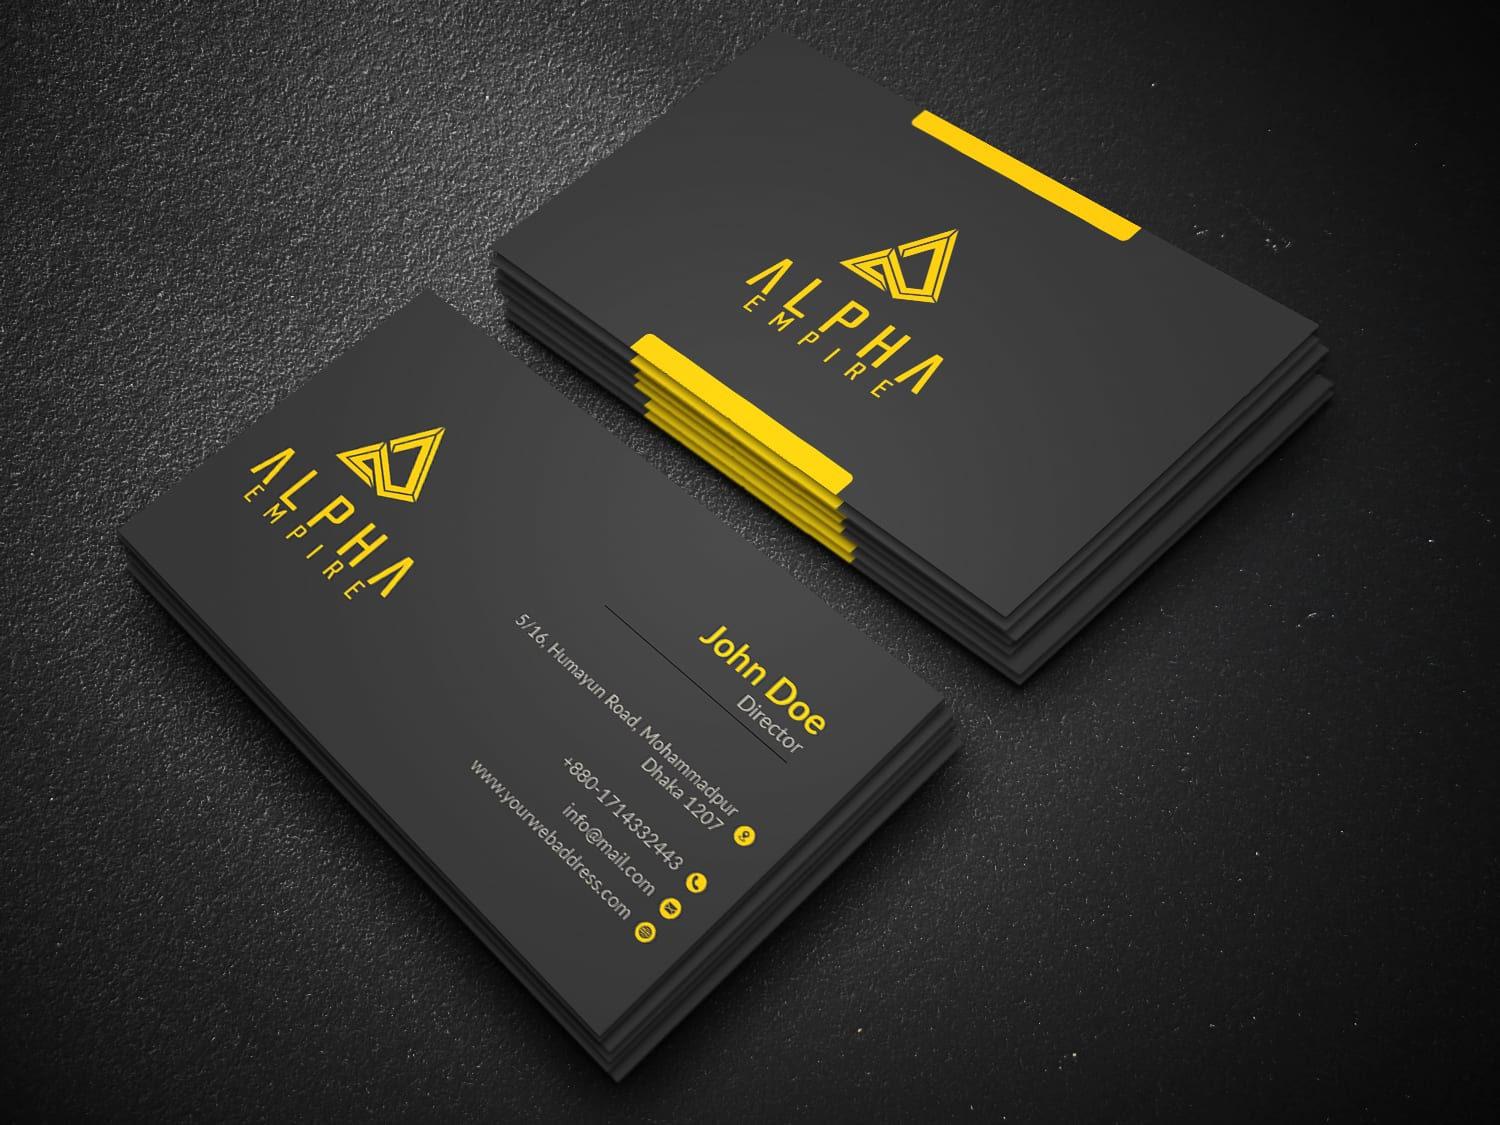 Design Stunning Business Cards Within 24 Hours By Albert92